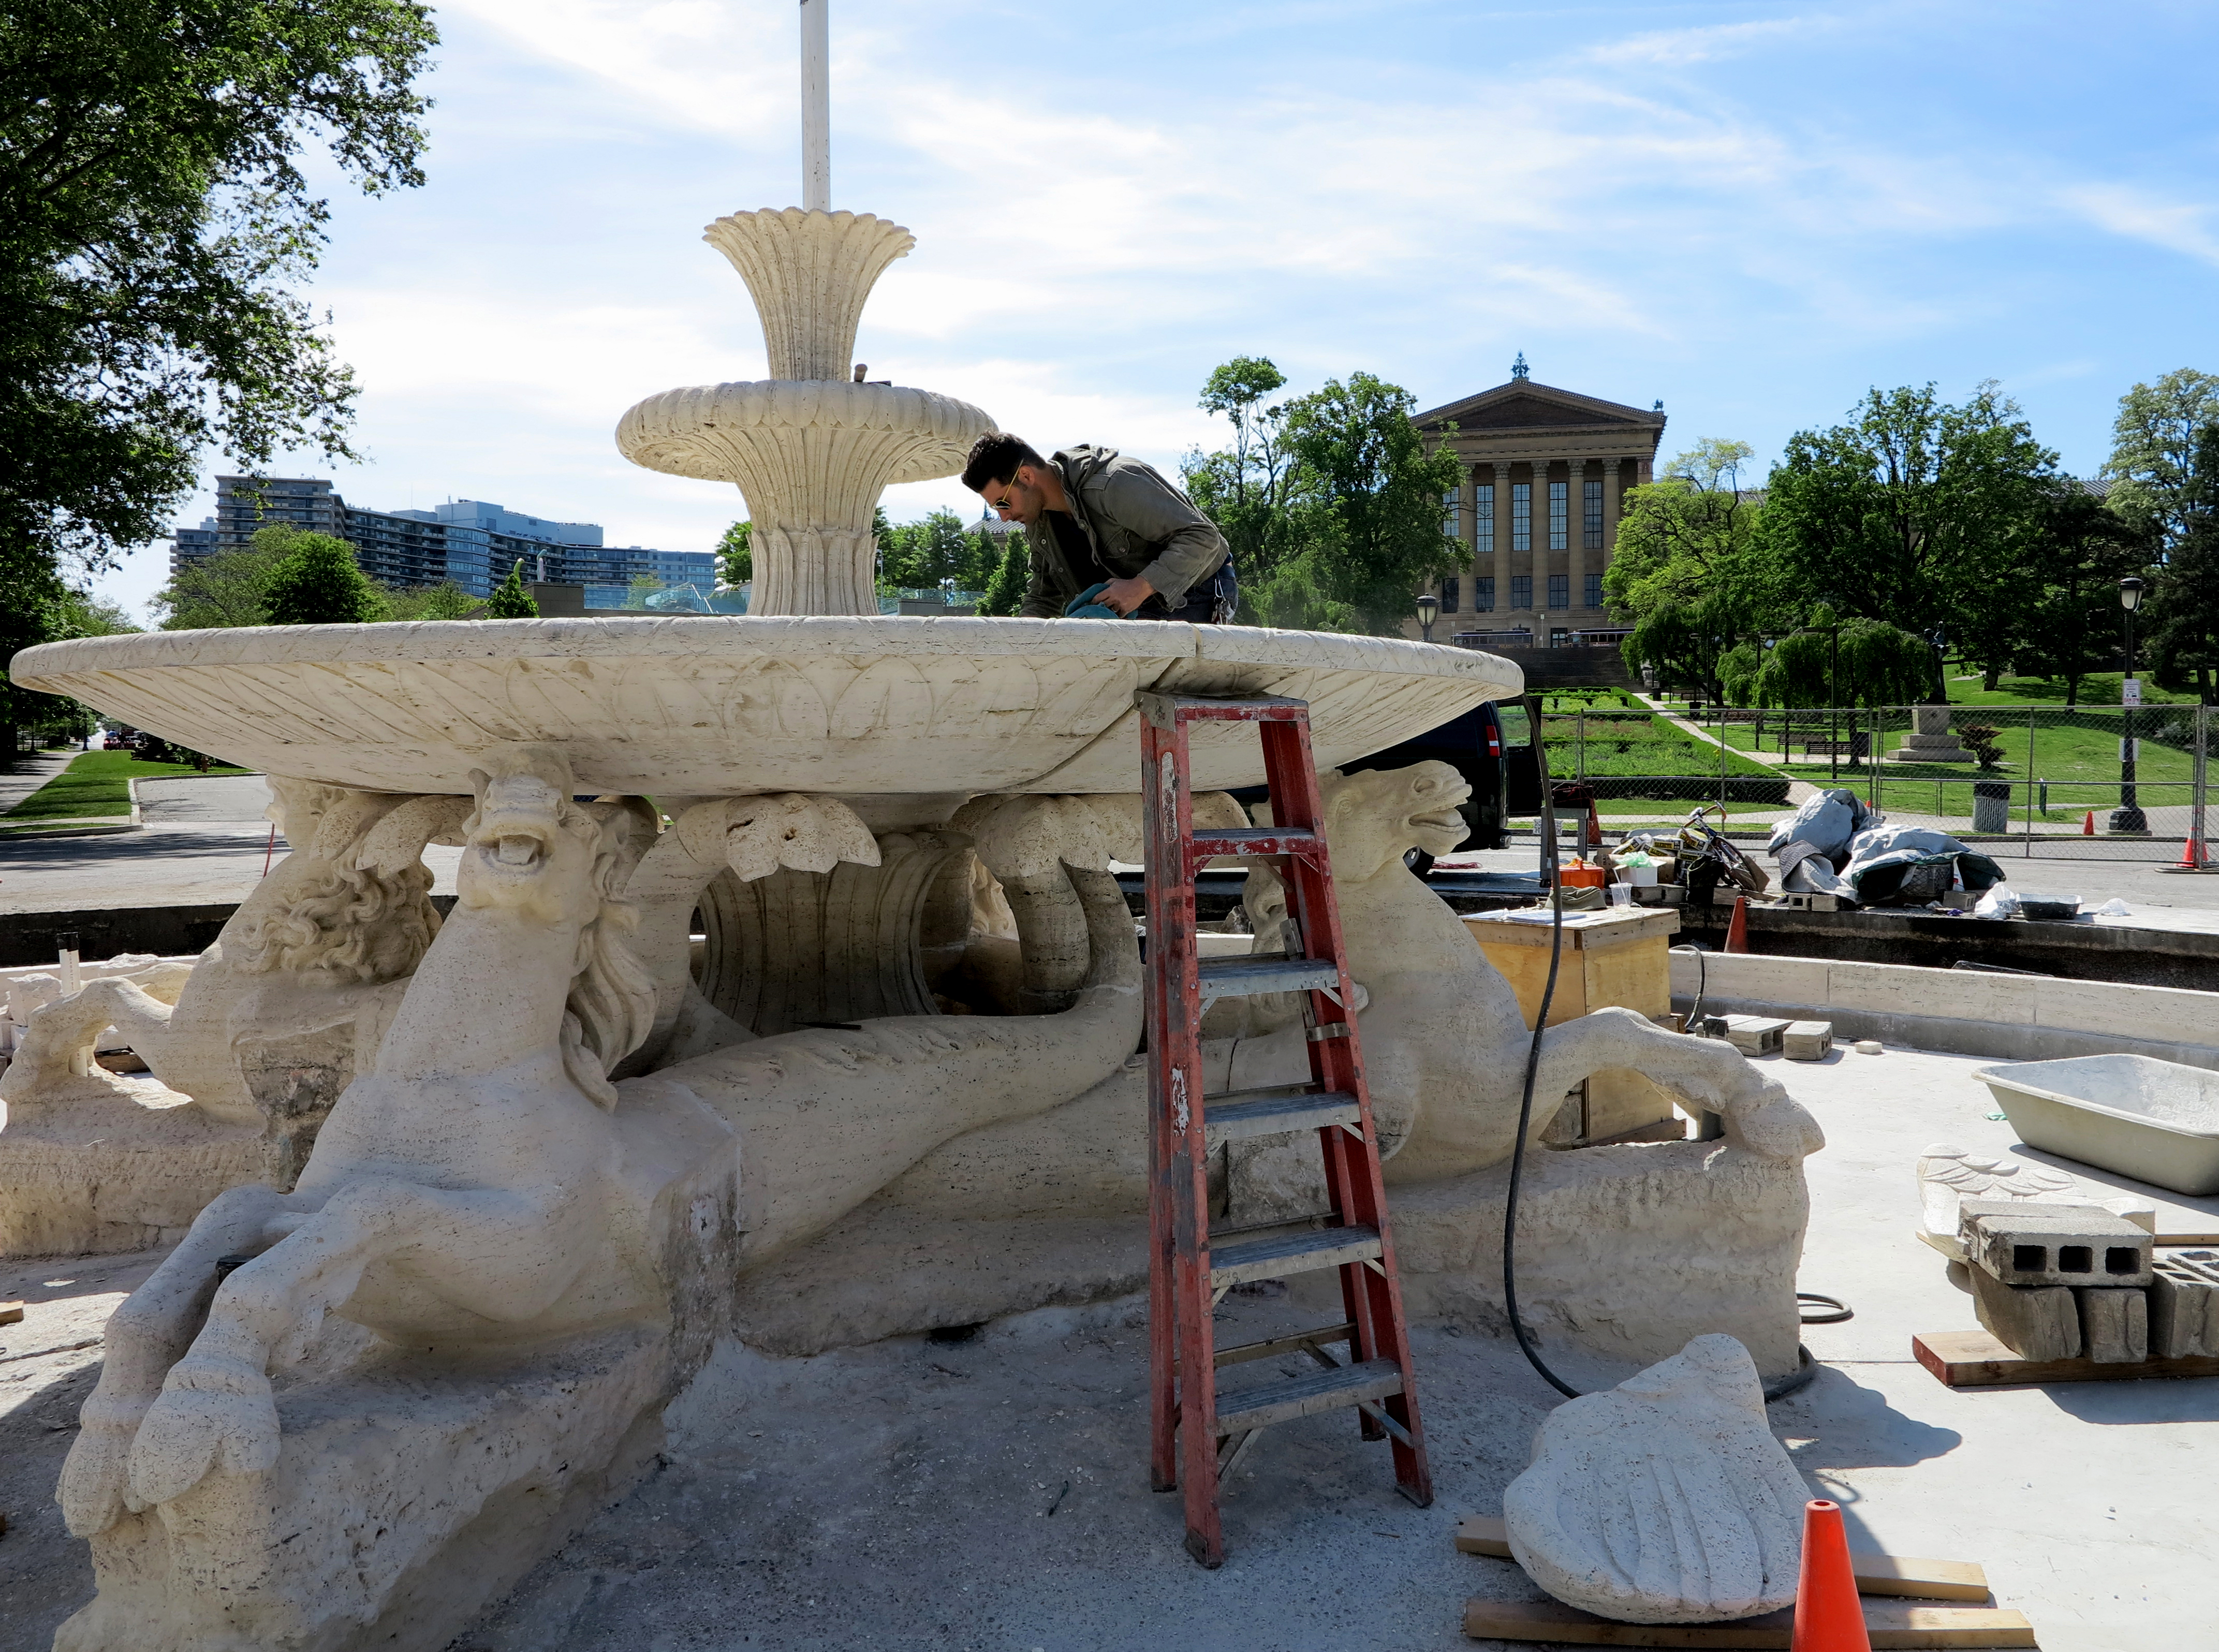 Conservator Marco Federico working in the fountain's shallow bowl.